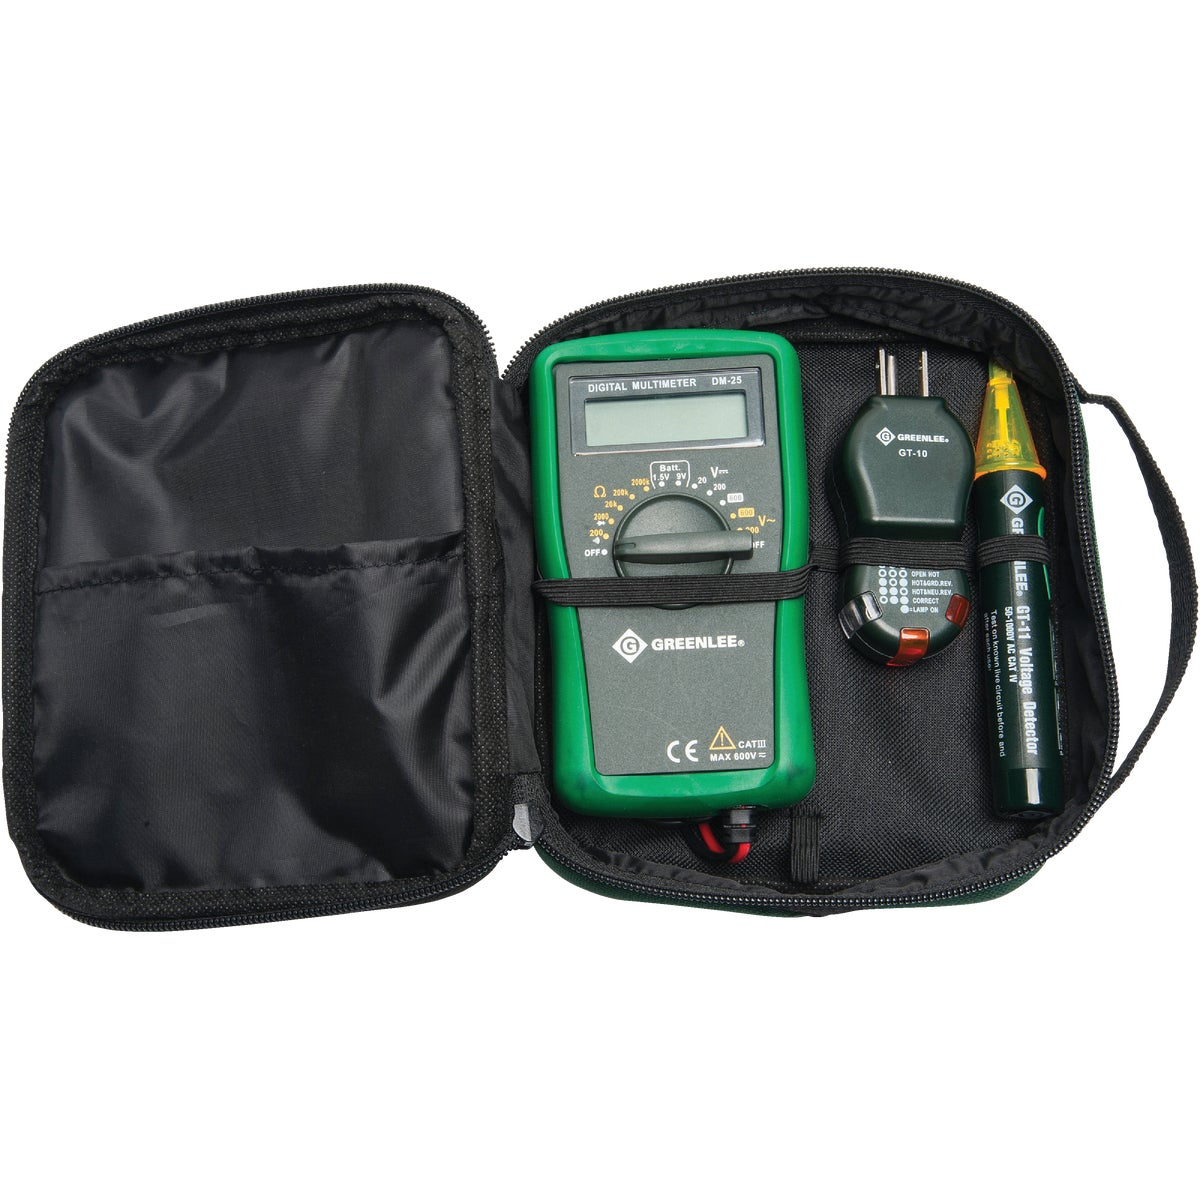 Item 511020, Basic electrical kit includes 1 each of the following items: Model No. DM-20 manual ranging multimeter, Model No. GT-10 polarity cube, Model No.